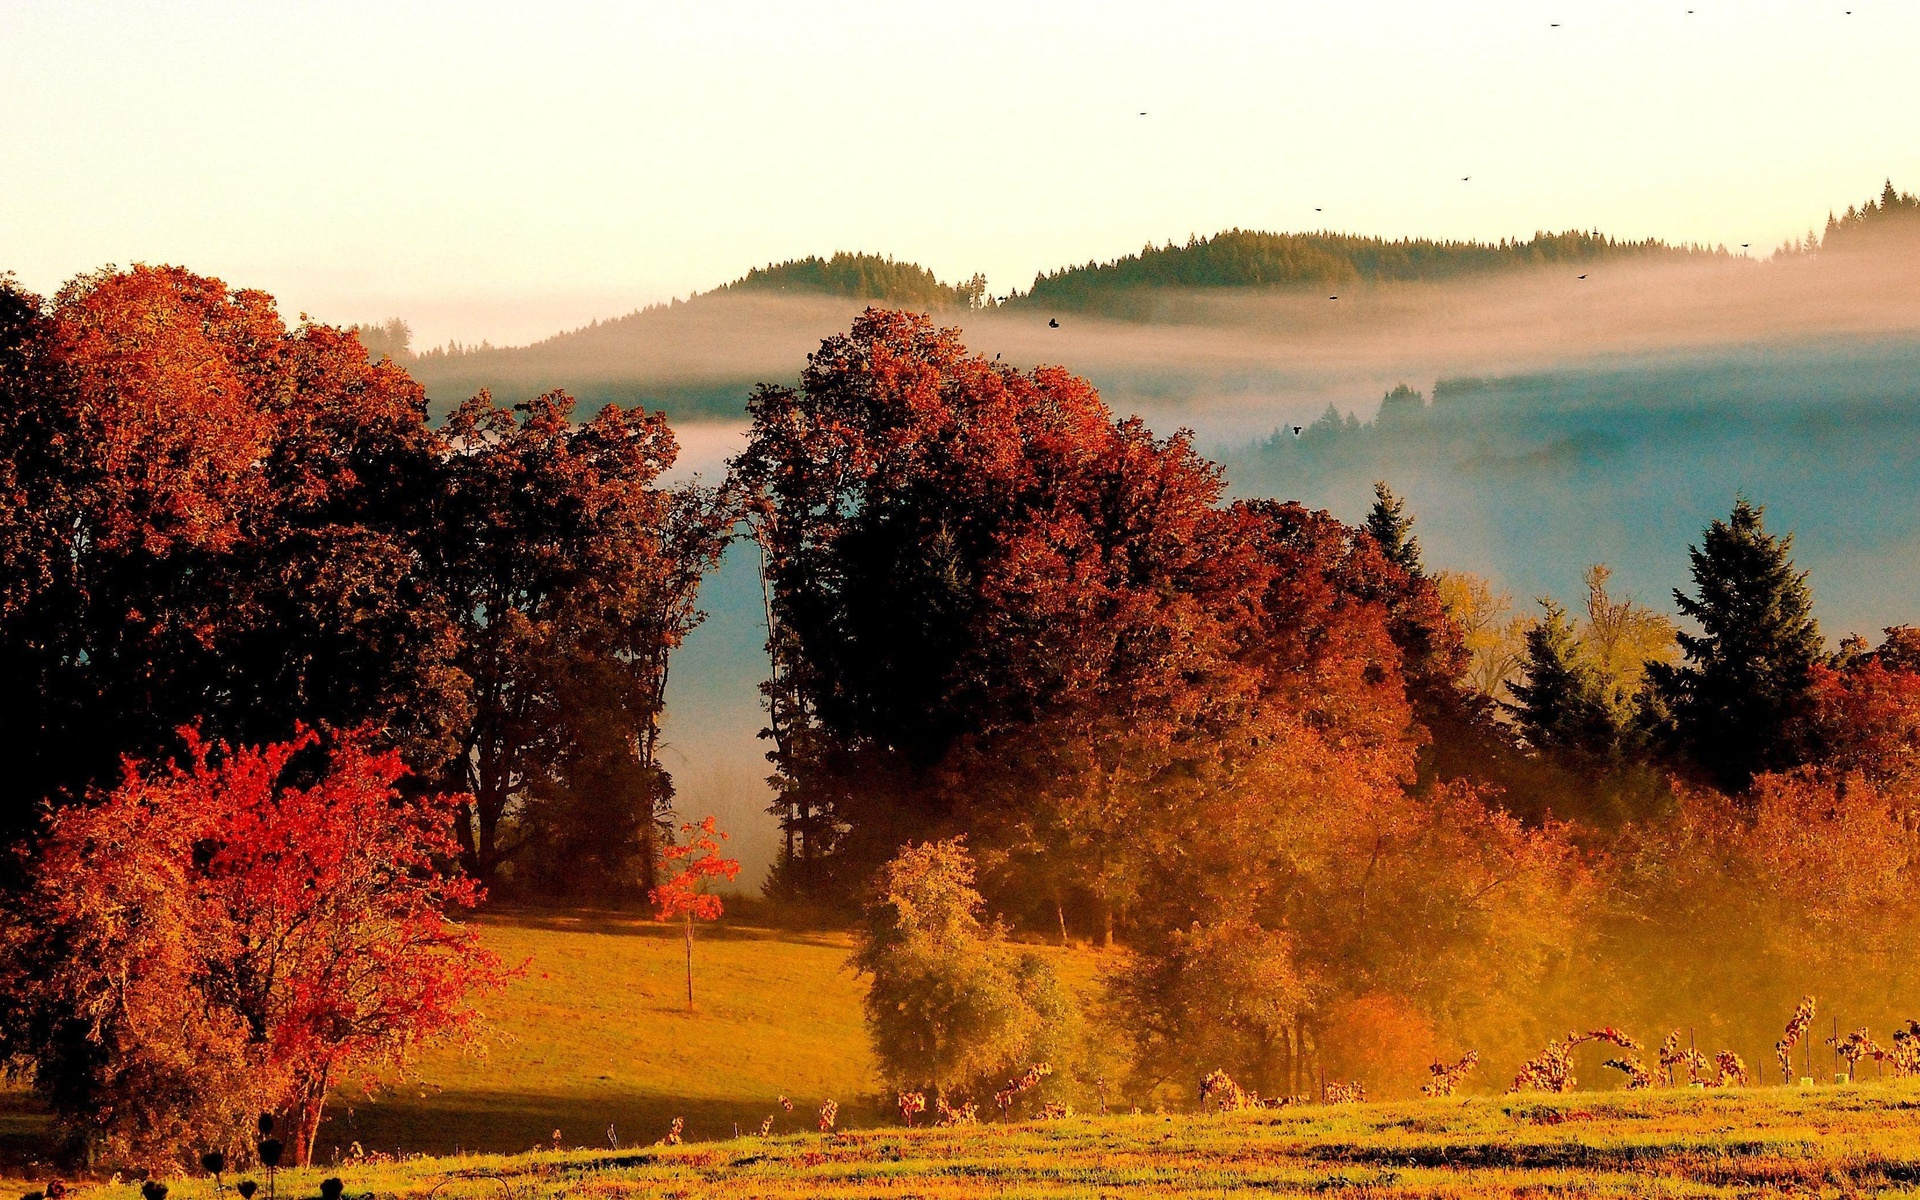 Portland Or Fall Had Wallpaper Eugene Oregon Fall Colors At King Estate Winery By Don